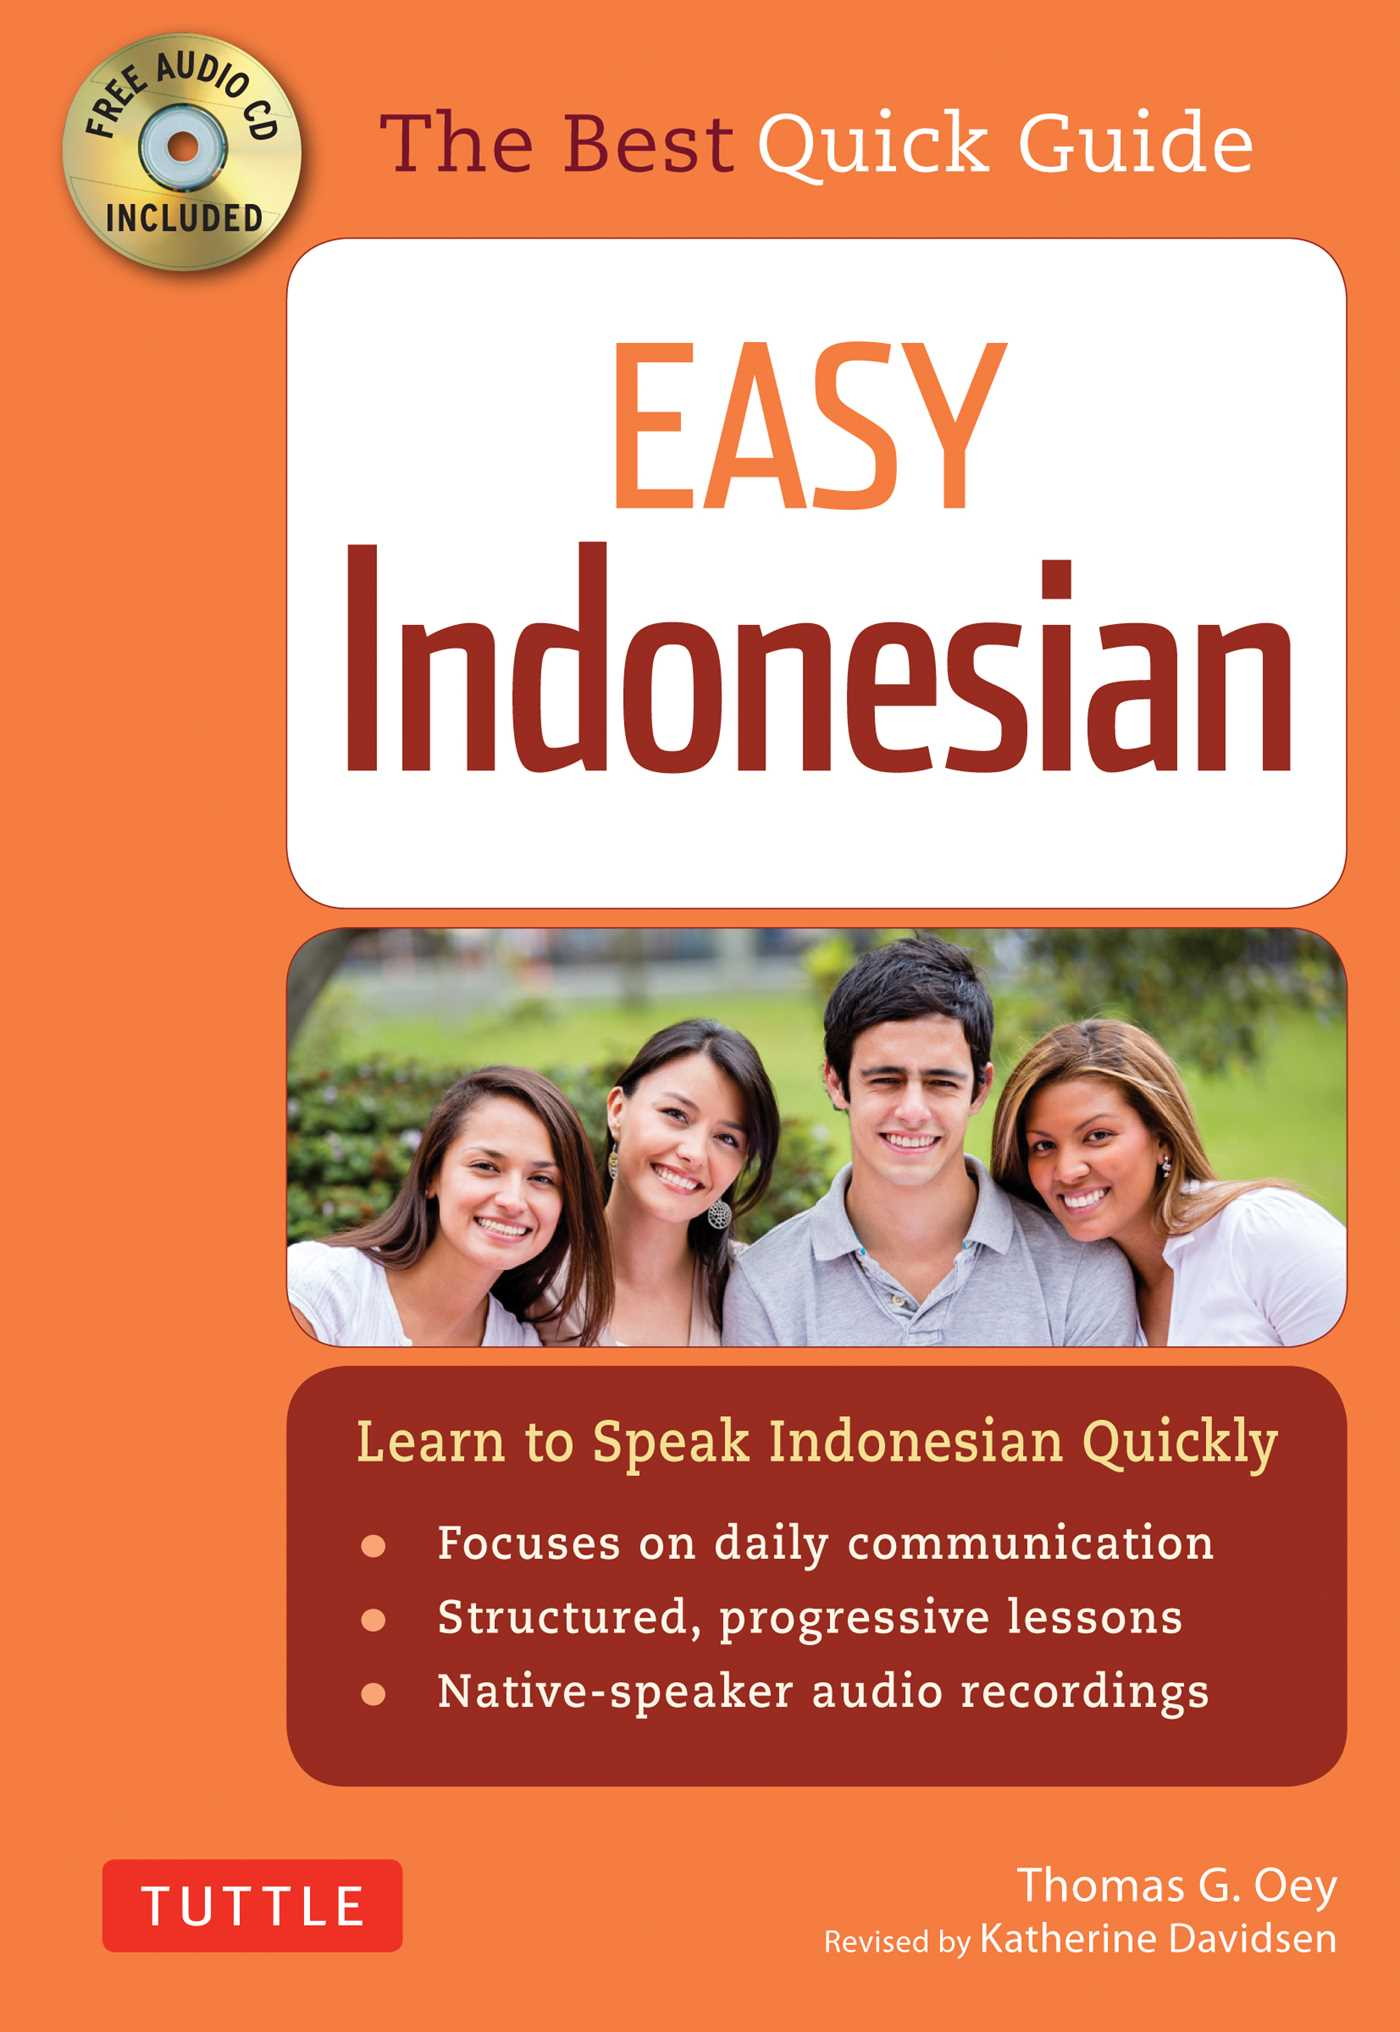 Easy-indonesian-9780804843133_hr